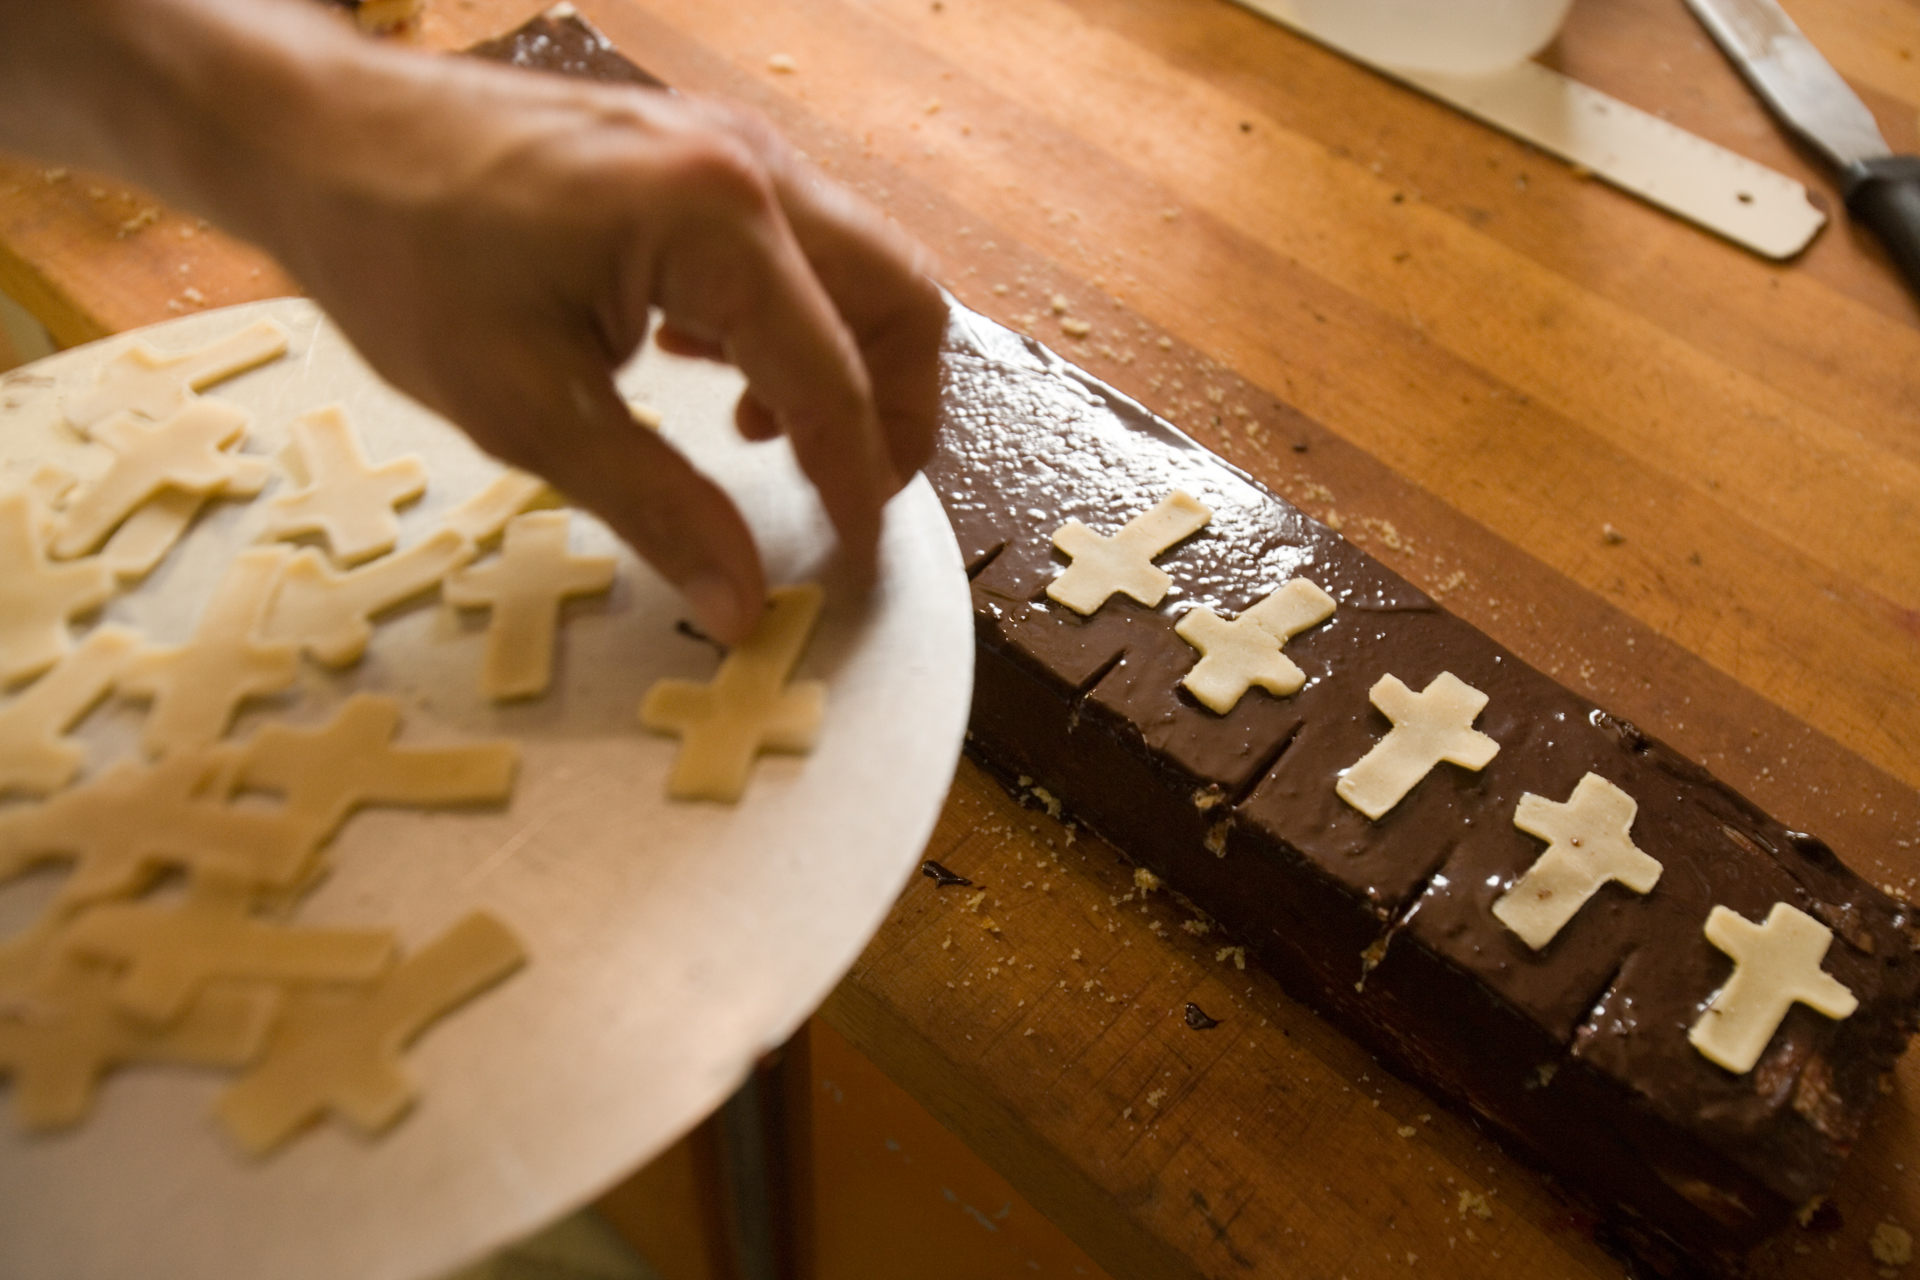 Marktl's bakers were quick to make Vatican bread, miter-shaped cookies, and a chocolate glazed pastry layered with marzipan (a Pope Benedict favorite), topped with a marzipan cross.  Marktl, Germany